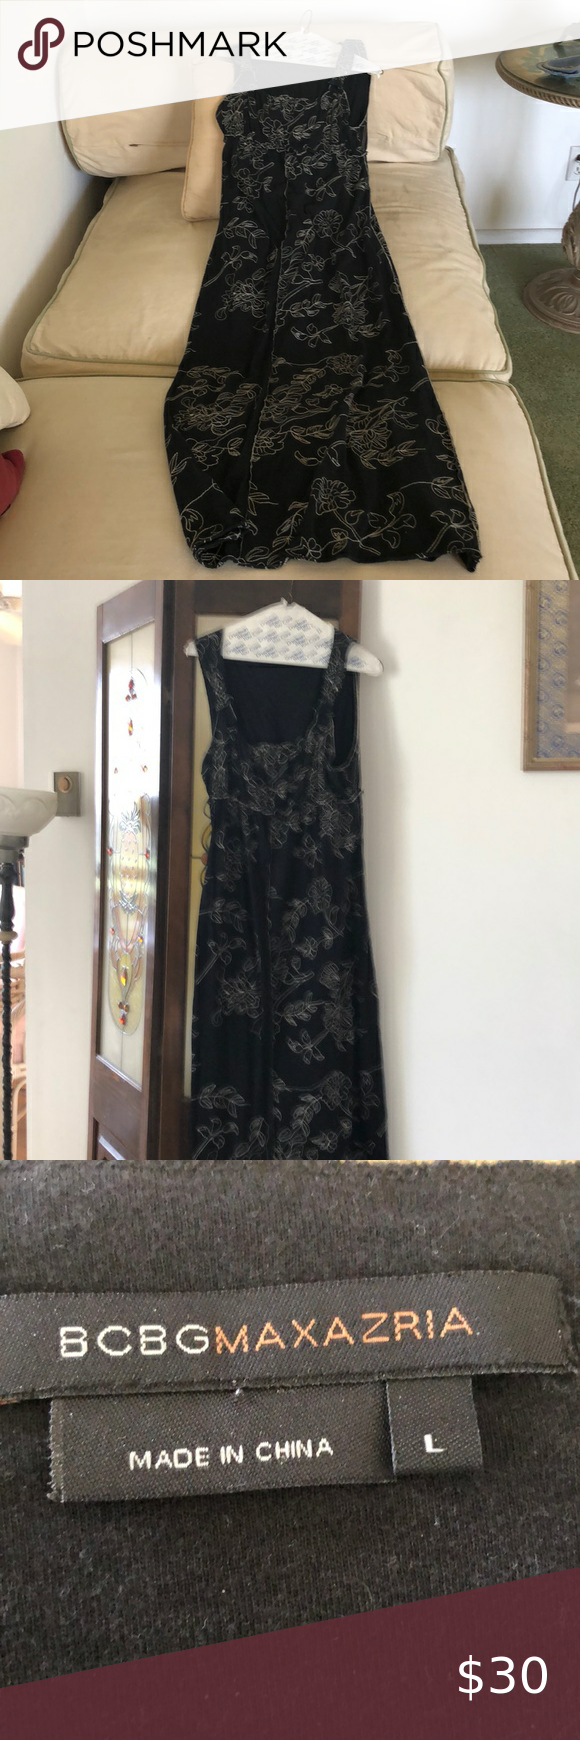 Bcbg Long Black Dress With Embroidered Flowers Long Black Maxi Dress Long Black Dress Dresses [ 1740 x 580 Pixel ]